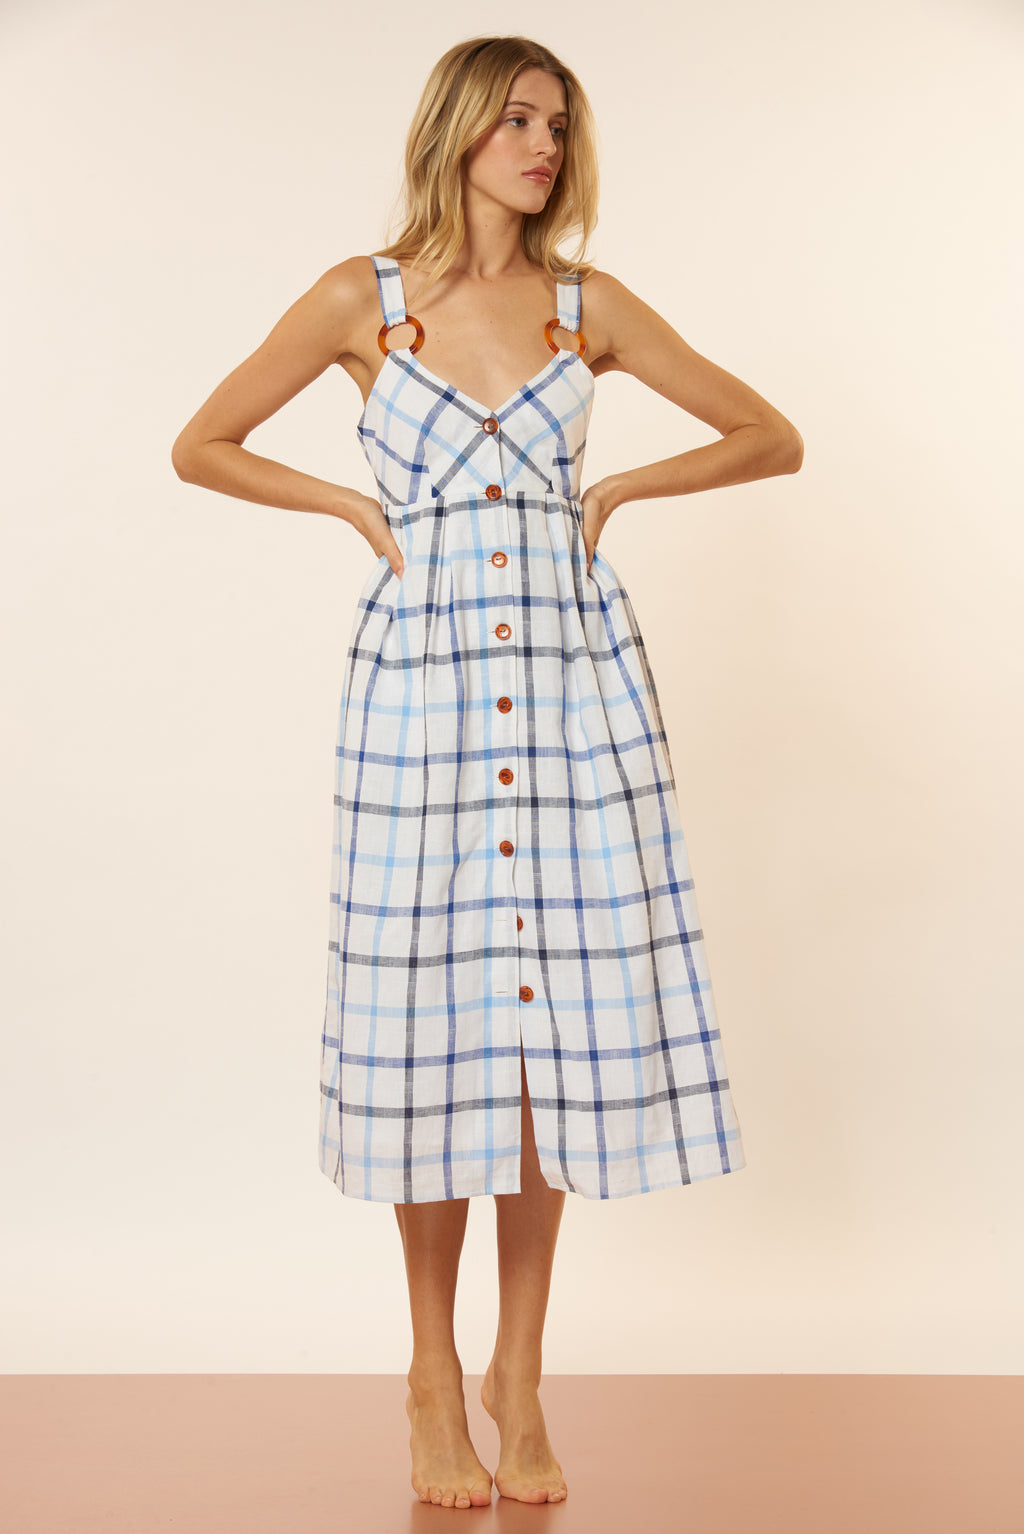 Summer Dress - Blue/White